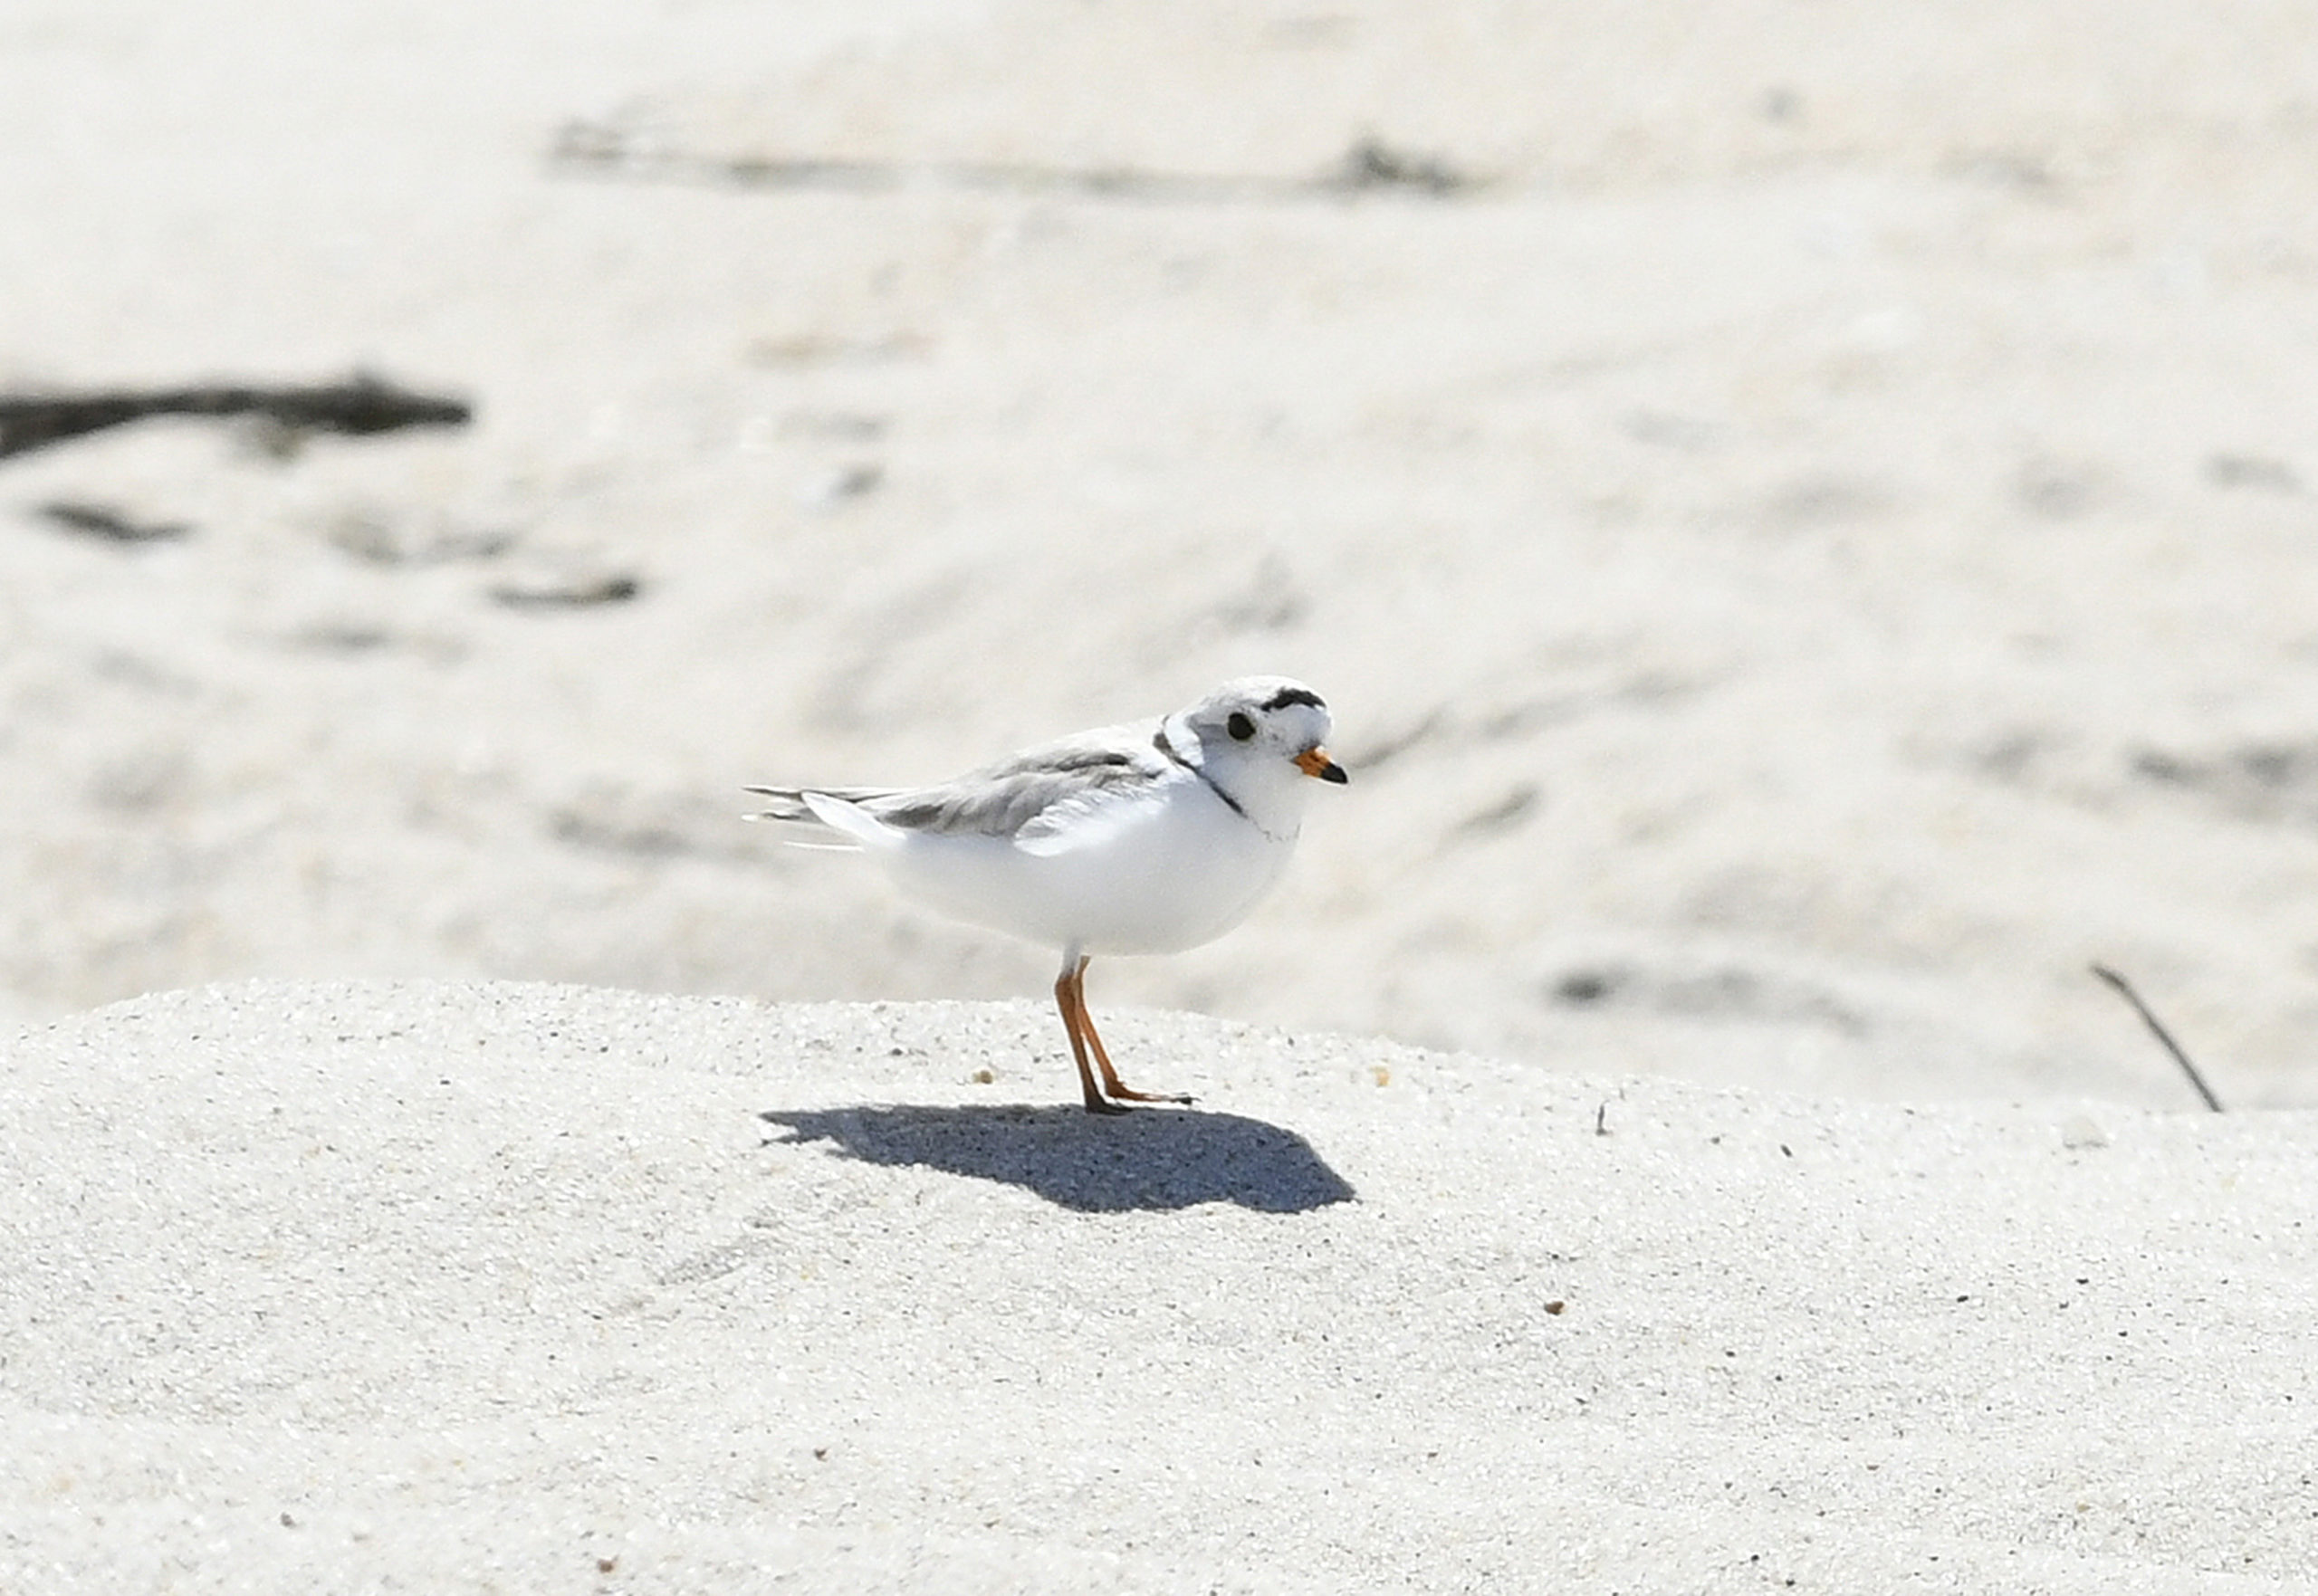 "Birds Might Cancel Camp Plans June 20 -- Suffolk County officials are notifying campers with reservations at Shinnecock East County Park that 19 of the sites could be closed soon if endangered piping plovers spotted at a nearby beach in Southampton Village, known as the Picnic Area, have chicks. In a letter sent out to the campers last week, Phil Berdolt, the county parks commissioner, said campsites 85 through 103 may be closed in the coming weeks ""if and when the plover chicks hatch."" He said the area where the sites are located, along the oceanfront, has not yet been closed, and if it does end up closing, the Parks Department would do its best to open it back up as soon as possible."